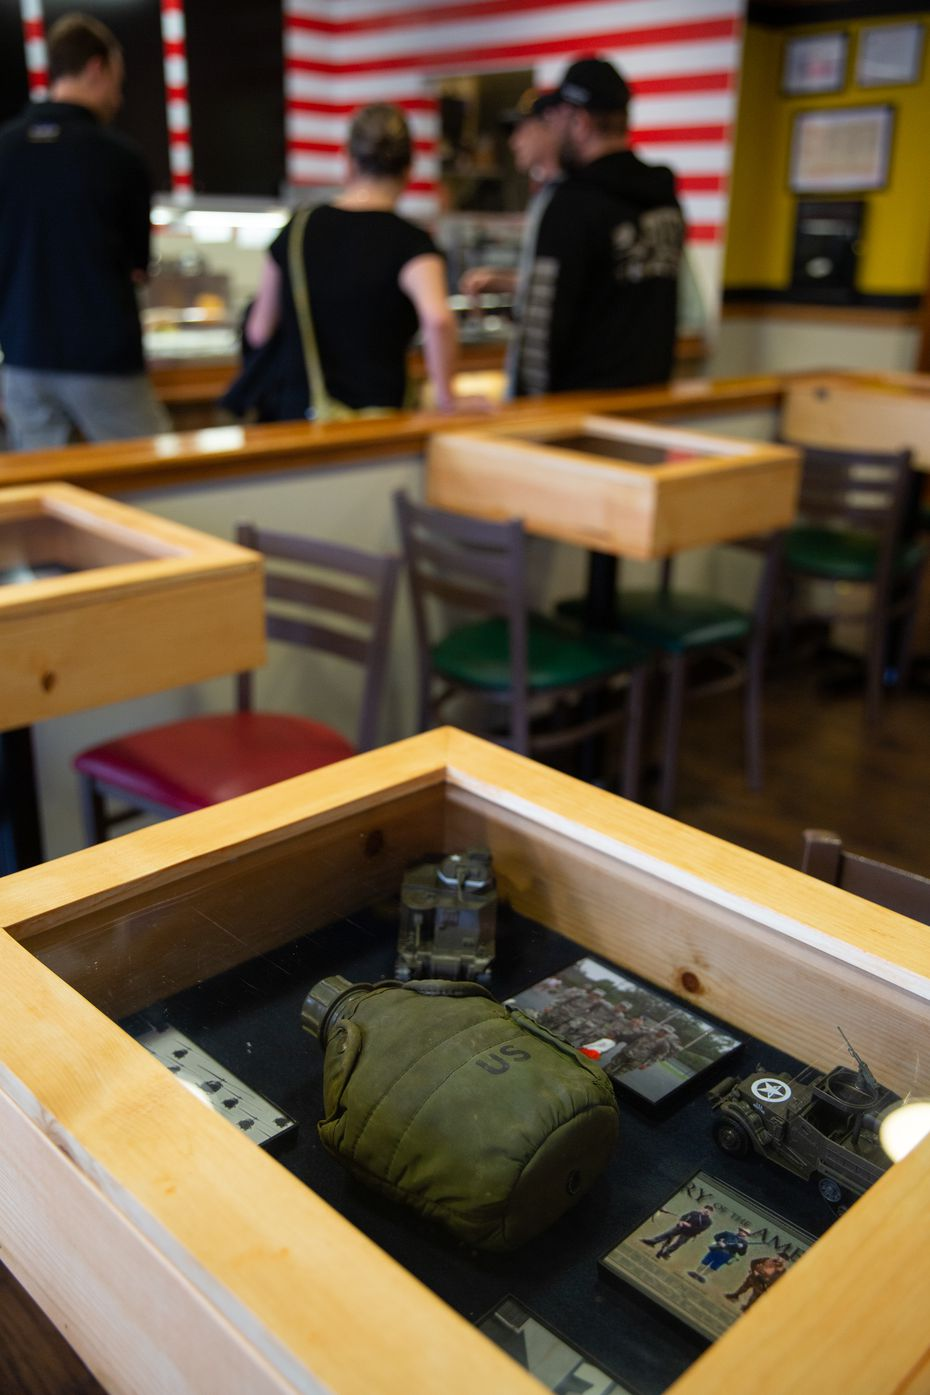 The tables serve as shadowboxes, showcasing military artifacts and memorabilia.